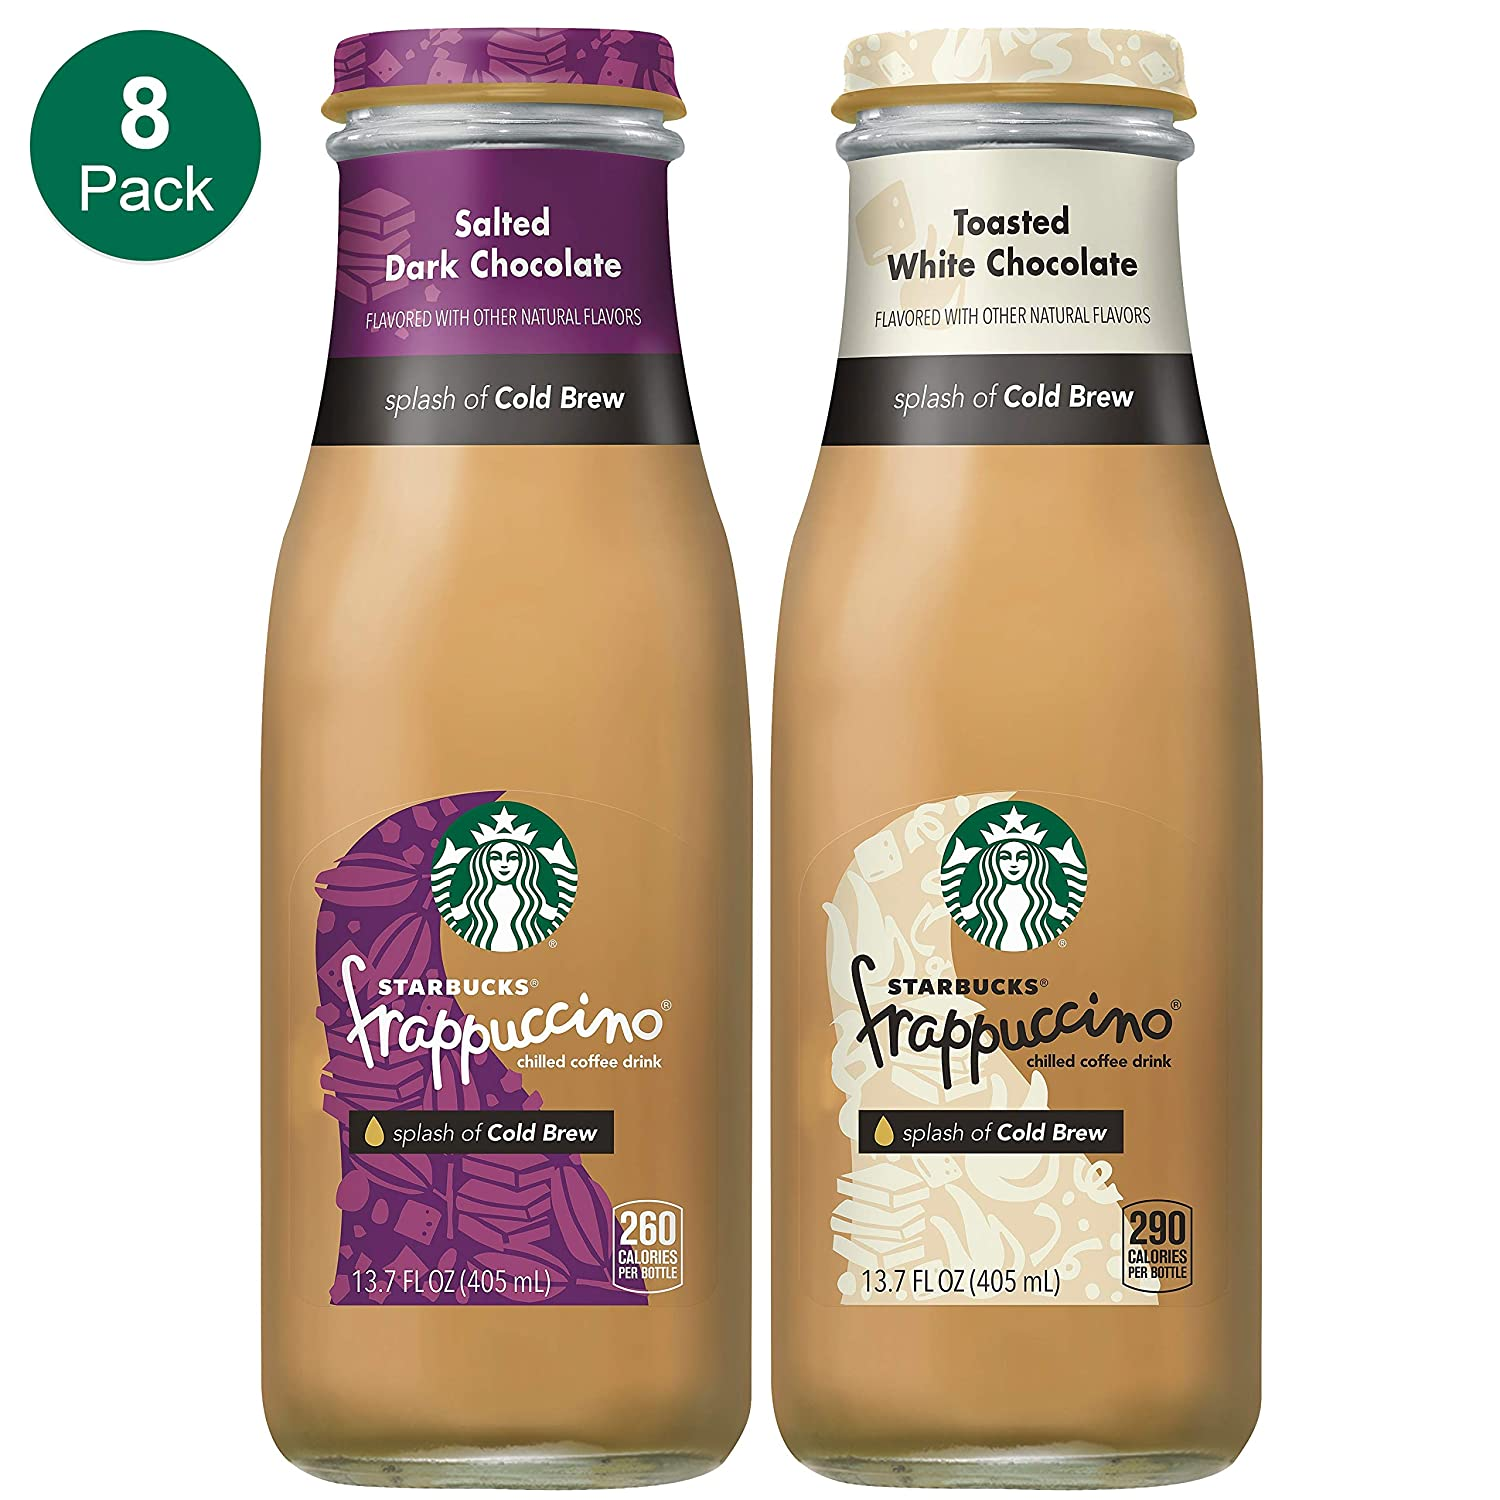 Starbucks Frappuccino Coffee 9 5 Fl Oz 15 Count Glass Bottles